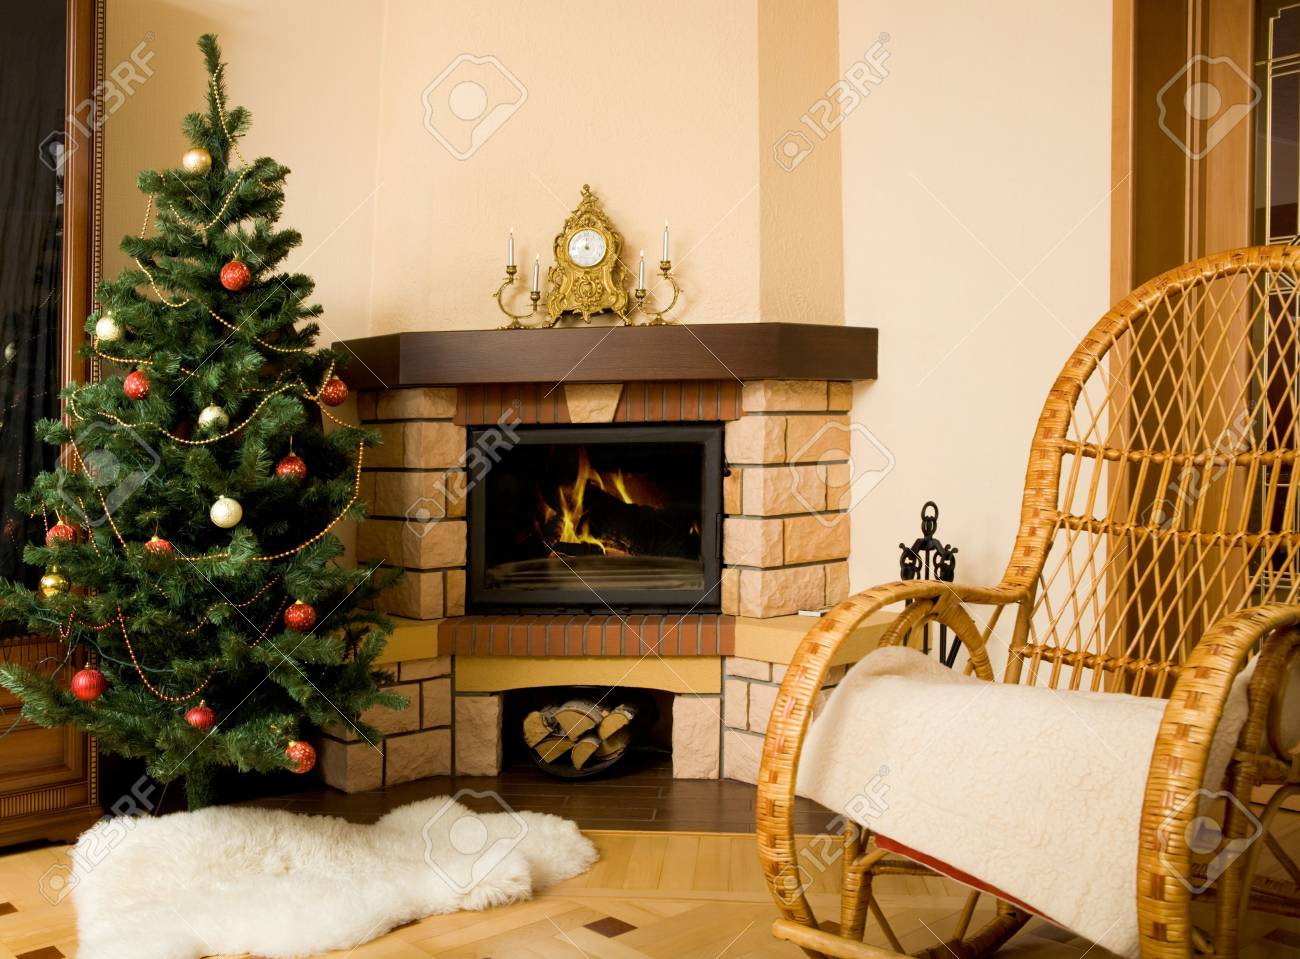 Photo of interior of room prepared for celebrating Christmas day Stock Photo - 6075083